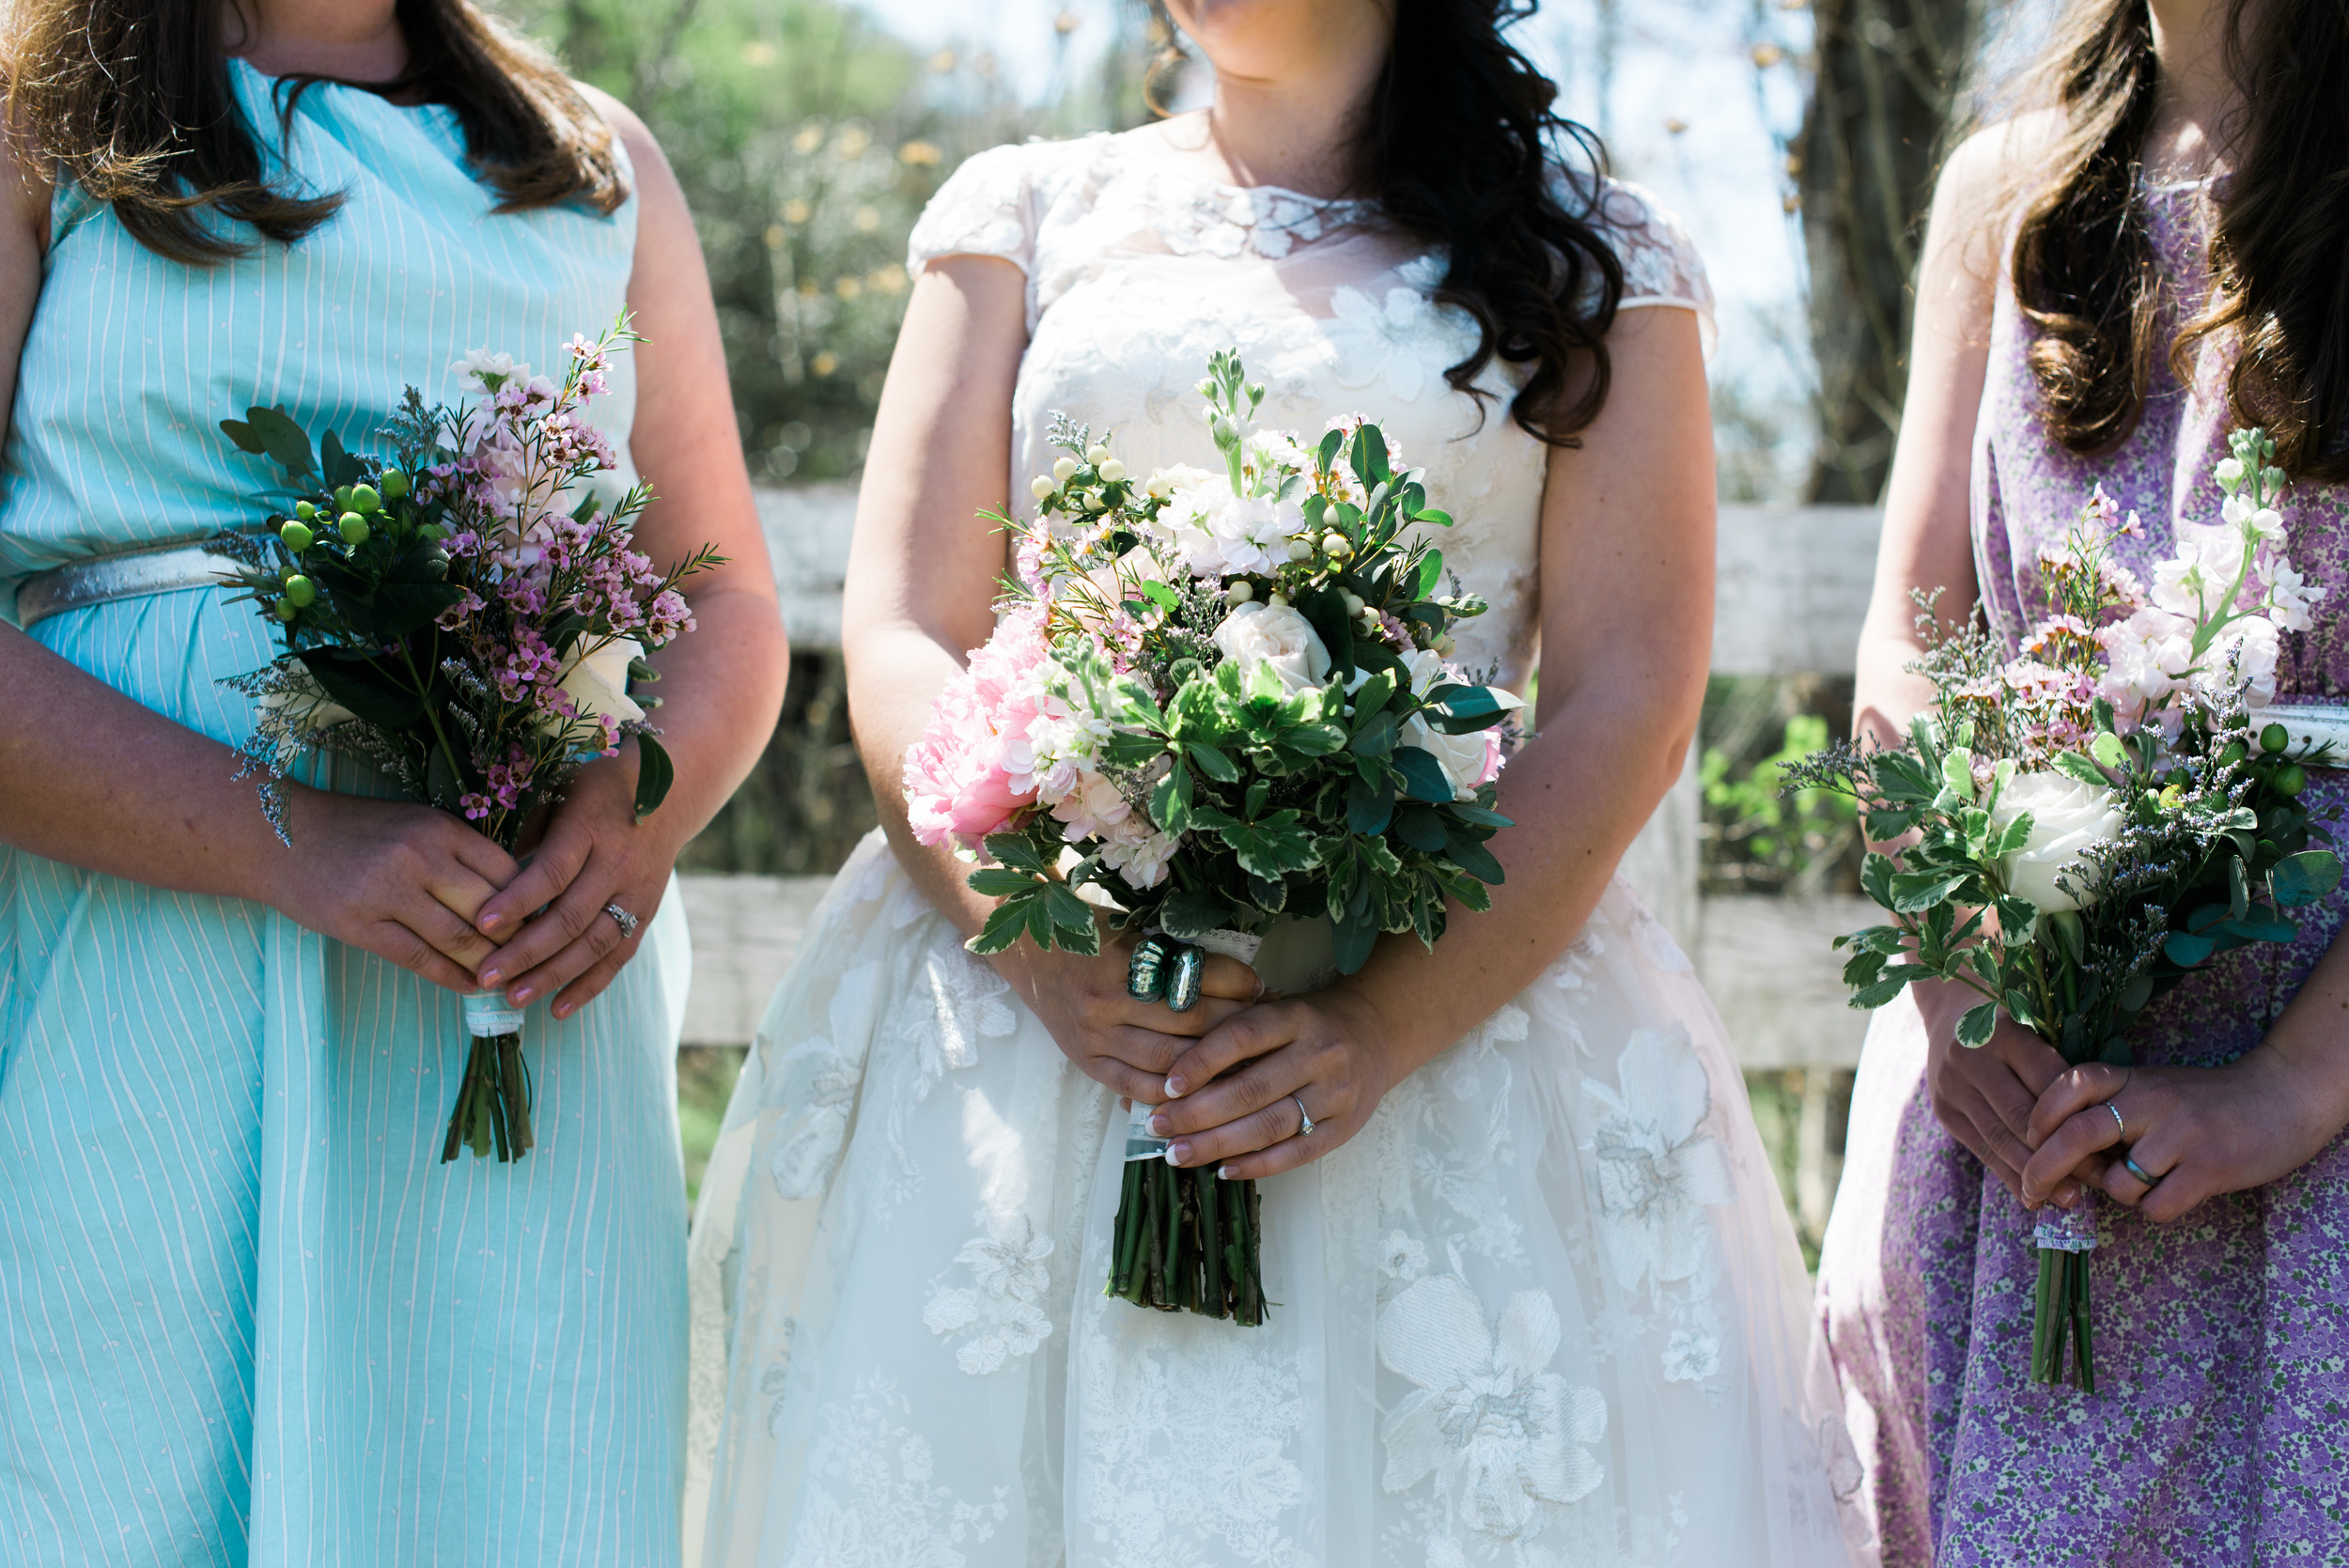 LOVING these beautiful wild flower bouquets.